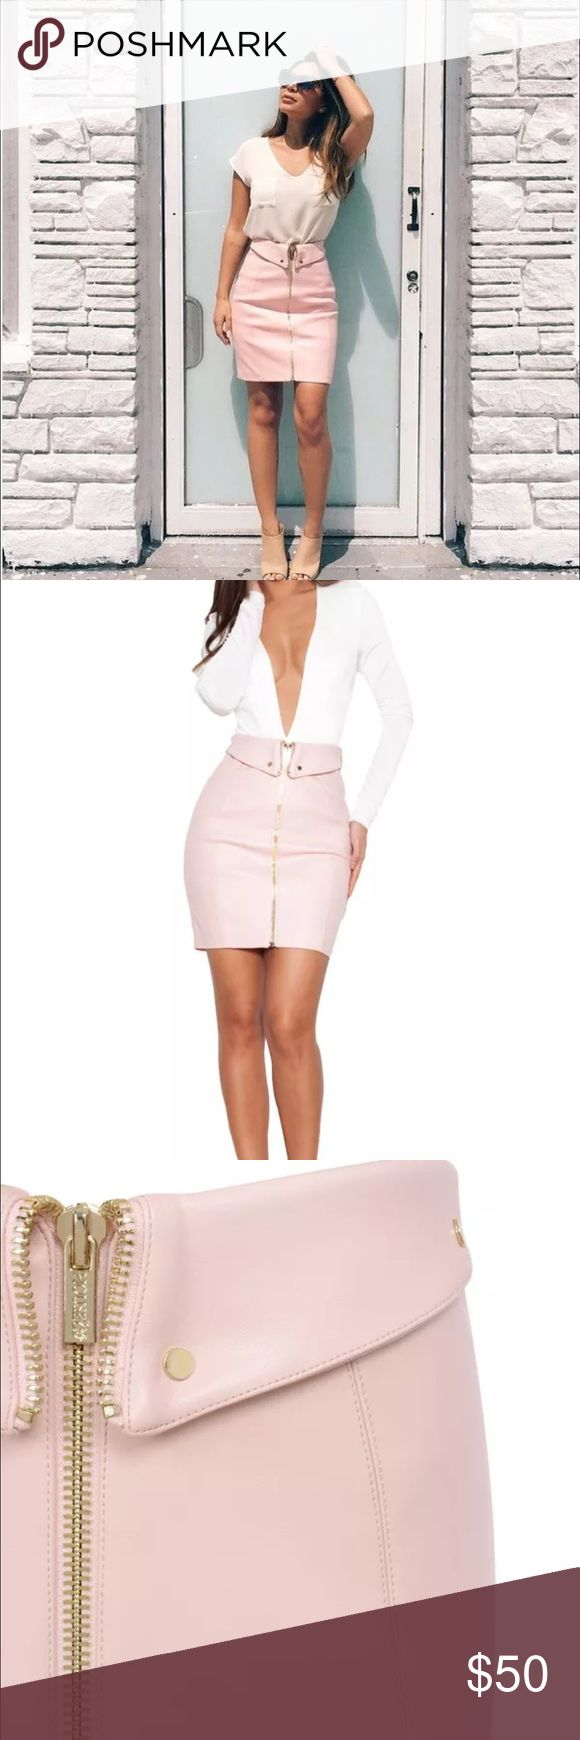 House of CB Ava Blush pink vegan leather miniskirt Oh-so-feminine 'Ava' arrives with a hint of blush gorgeousness. This uber-gorge min skirt is your perfect Summer wardrobe addition. In palest blush pink, 'Ava' is made from soft and stretchy vegan leather and features a fold over waistband and full length back zipper. Made from softest stretch vegan leather. Team yours with our 'Lorenza' bodysuit and neutral pumps.  Designed For House of CB  Length: Approx 49cm Gentle Dry Clean Only  Model…